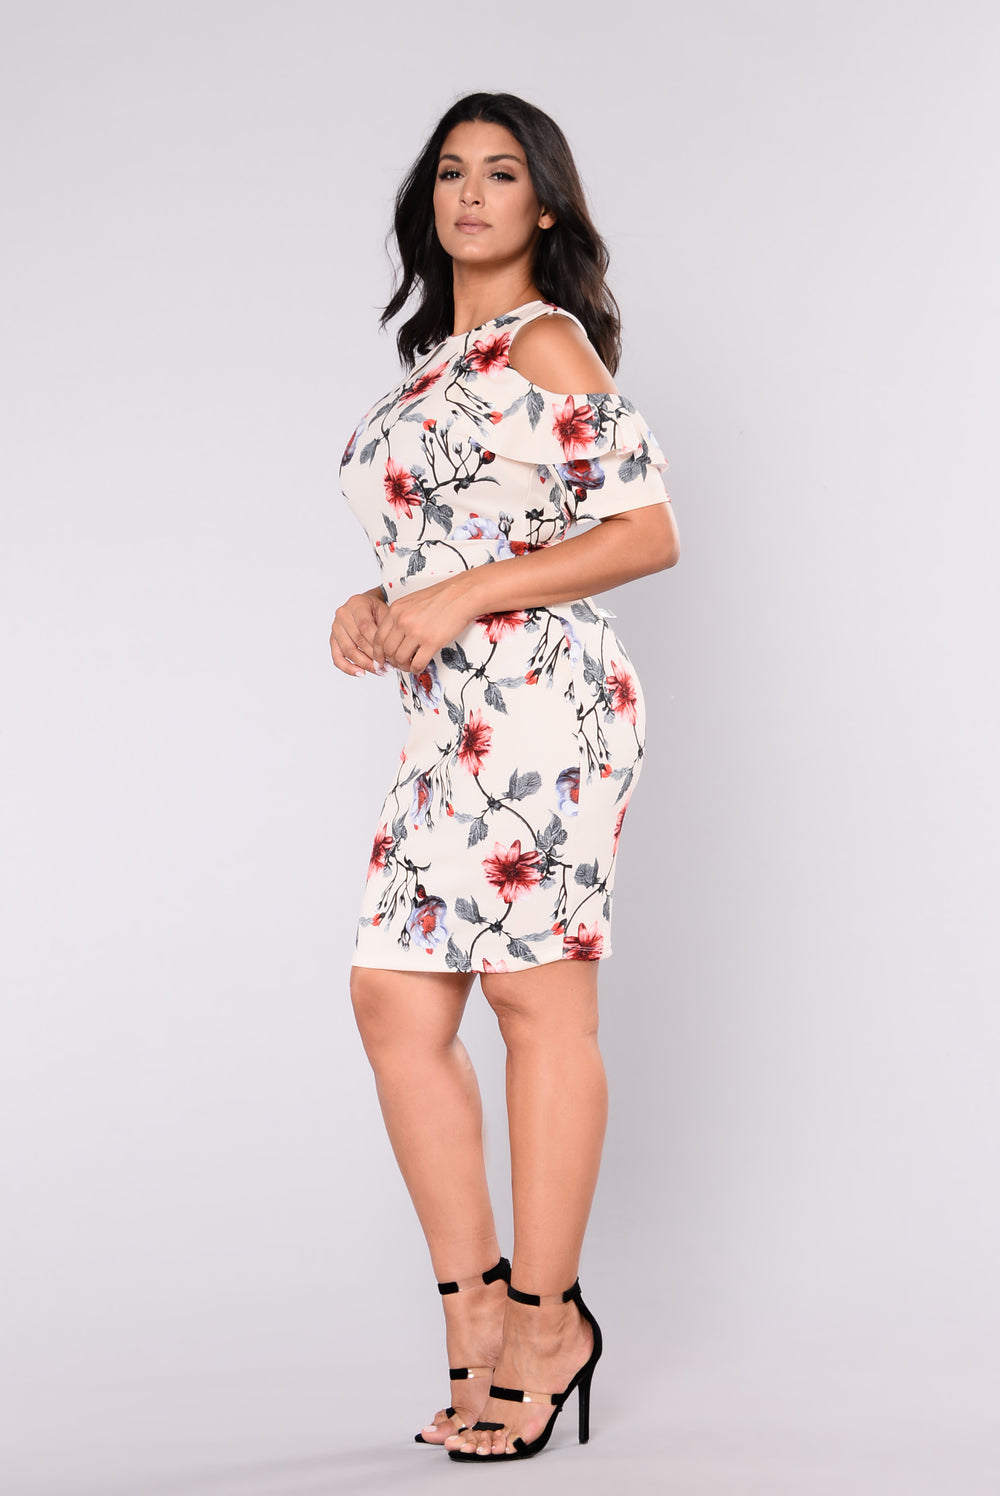 Cared For You Dress - Nude Floral